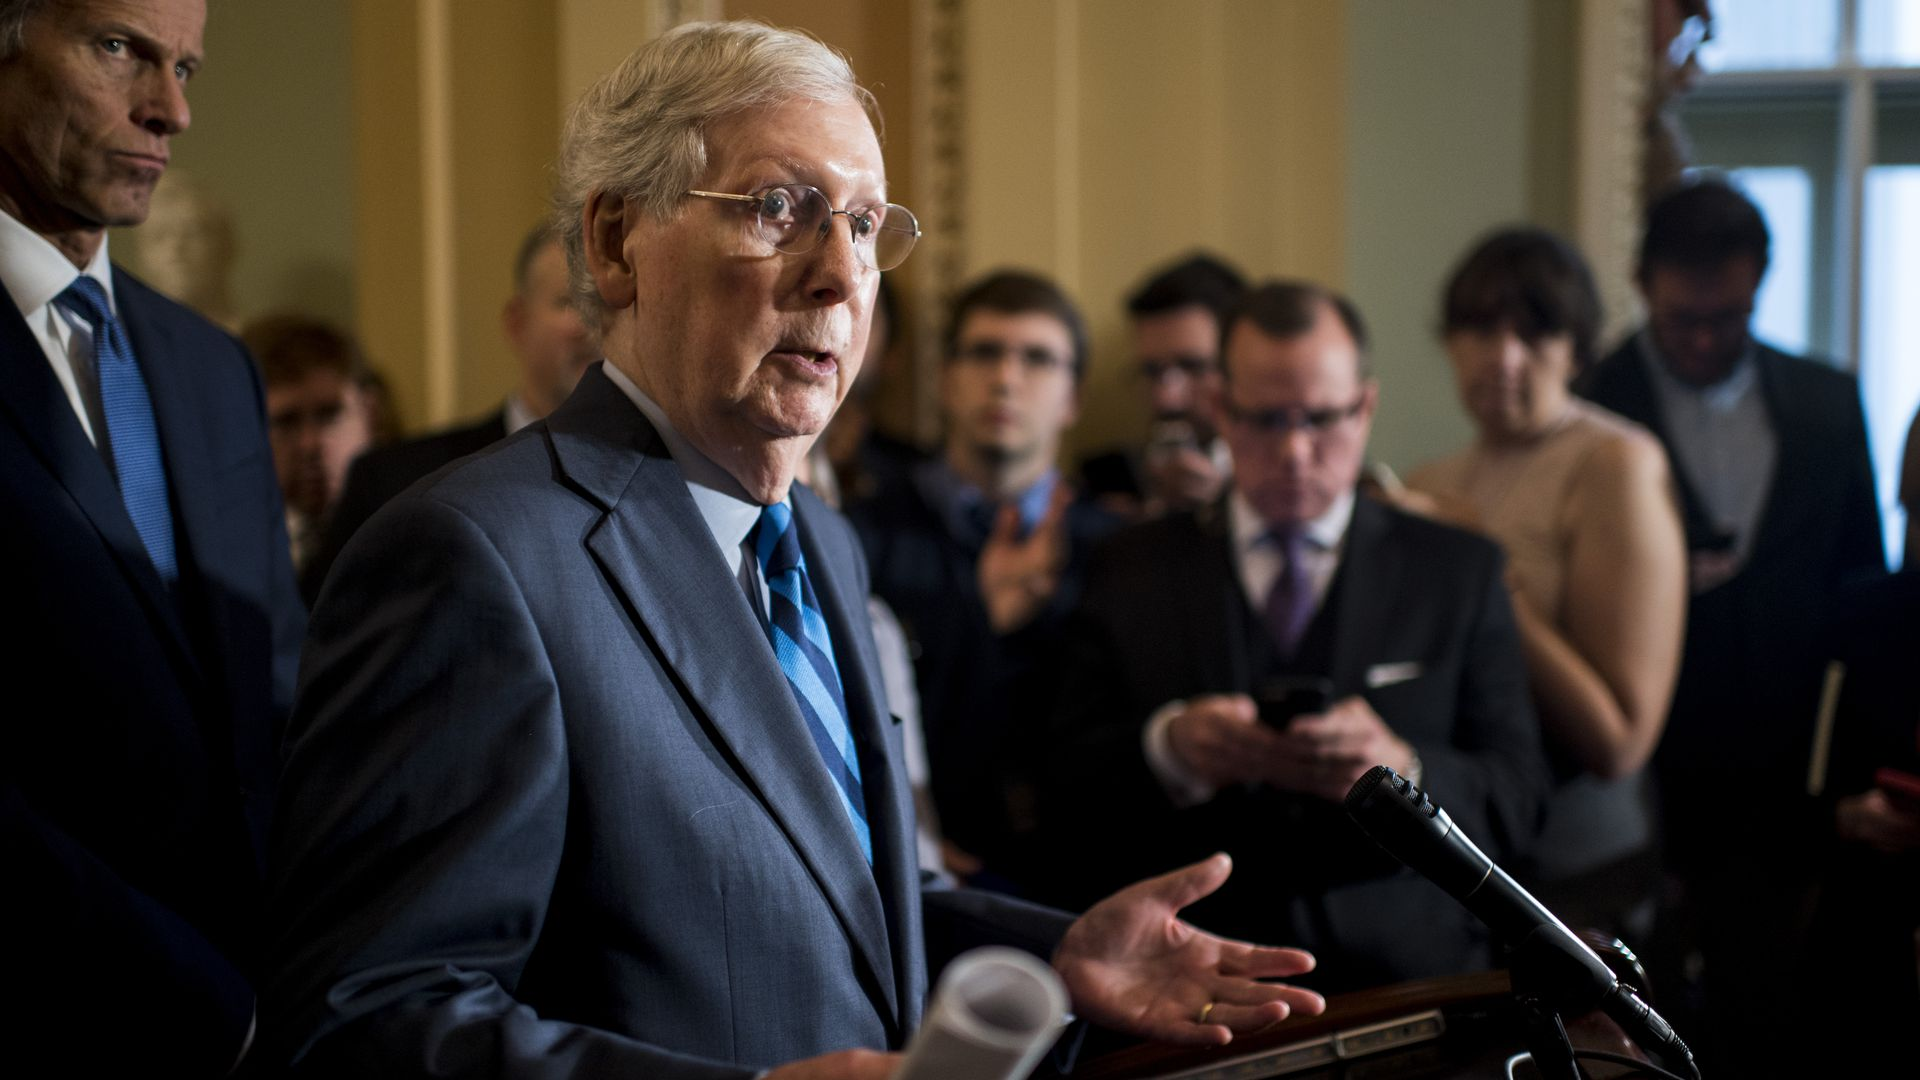 Senate Majority Leader Mitch McConnell, R-Ky., speaks during the press conference on Wednesday, Oct. 16, 2019